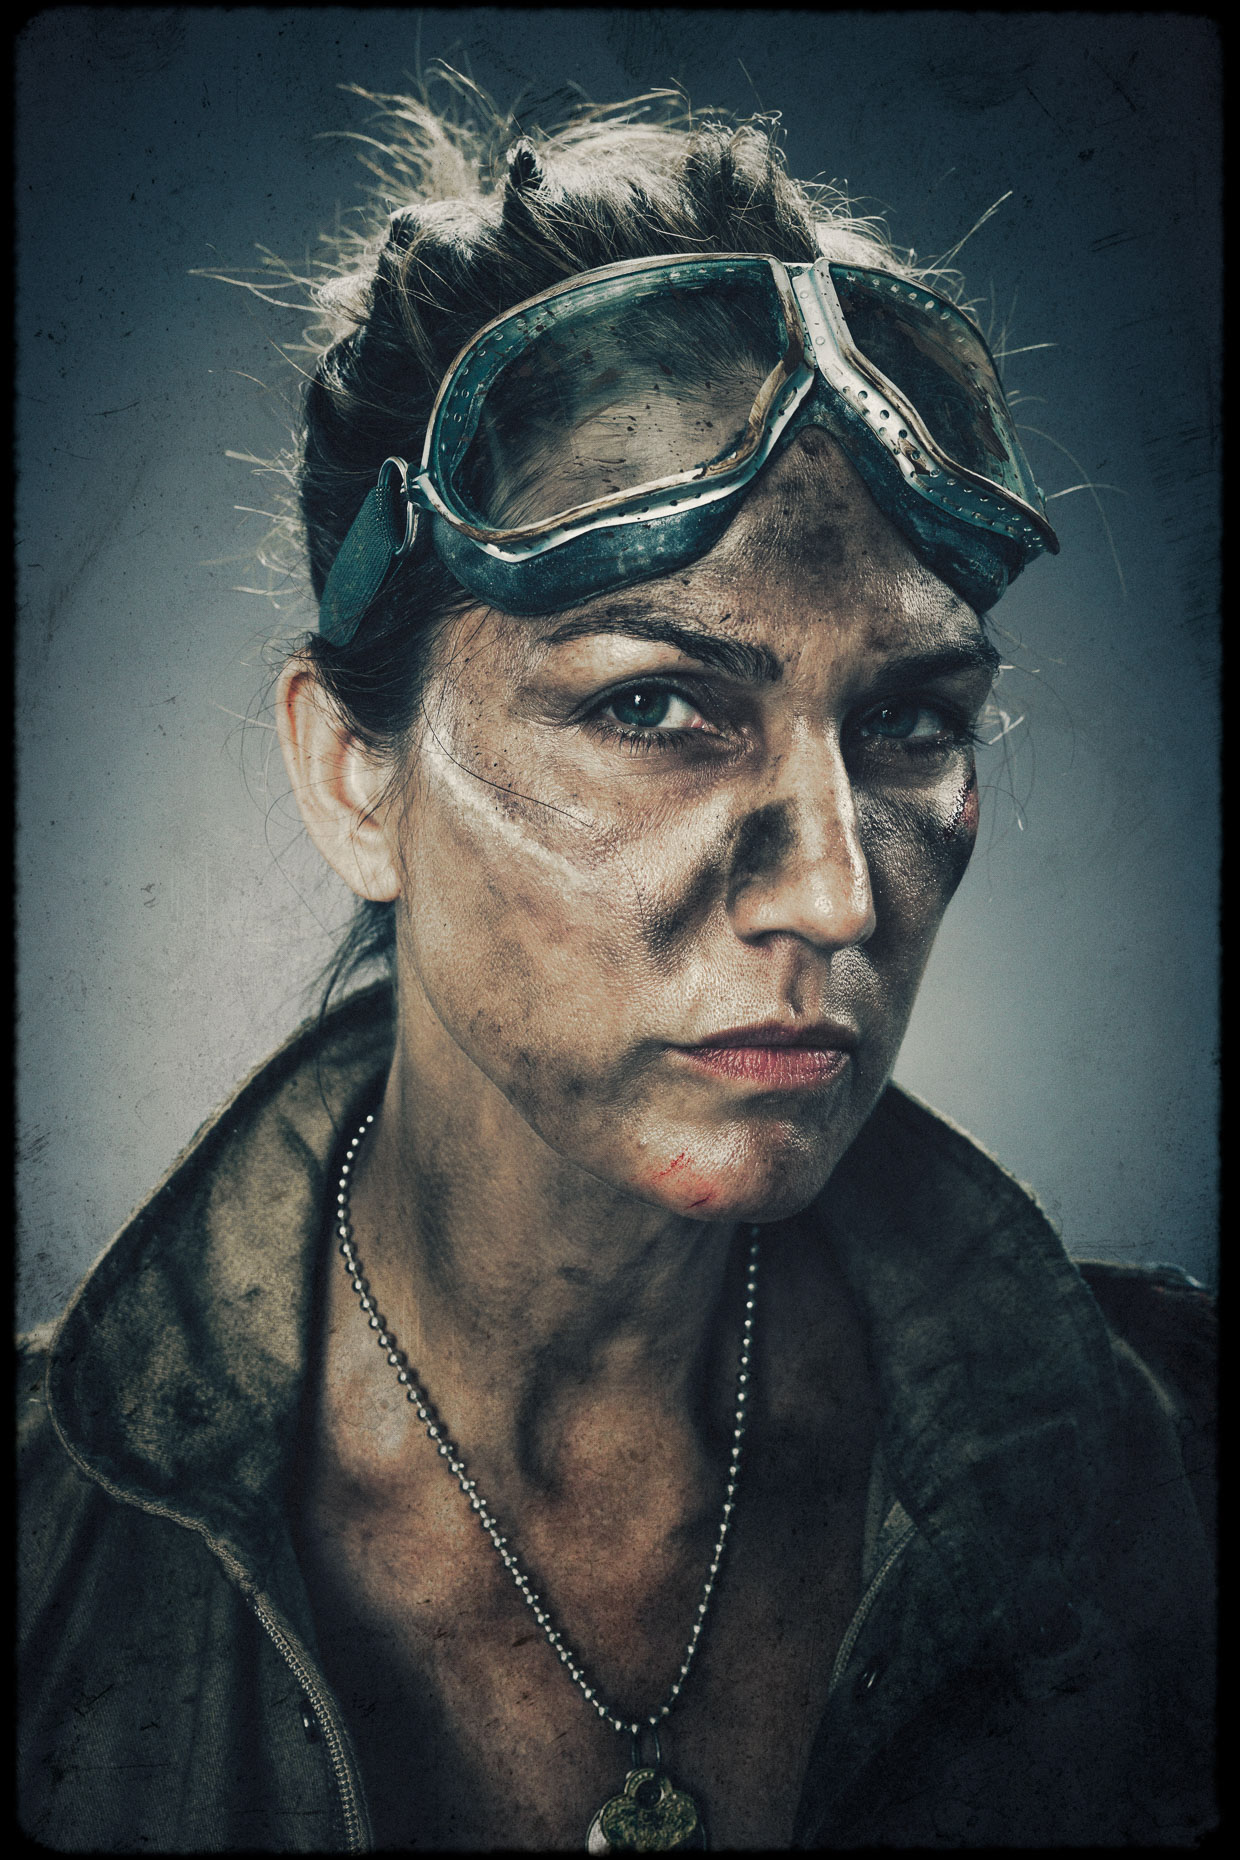 Charactrer portrait of model and actor Tina Kraft as Turner, one of 9 main characters. Introducing the apocalyptic world of Bad Choices, a visual screenplay and personal project by Andy Batt.